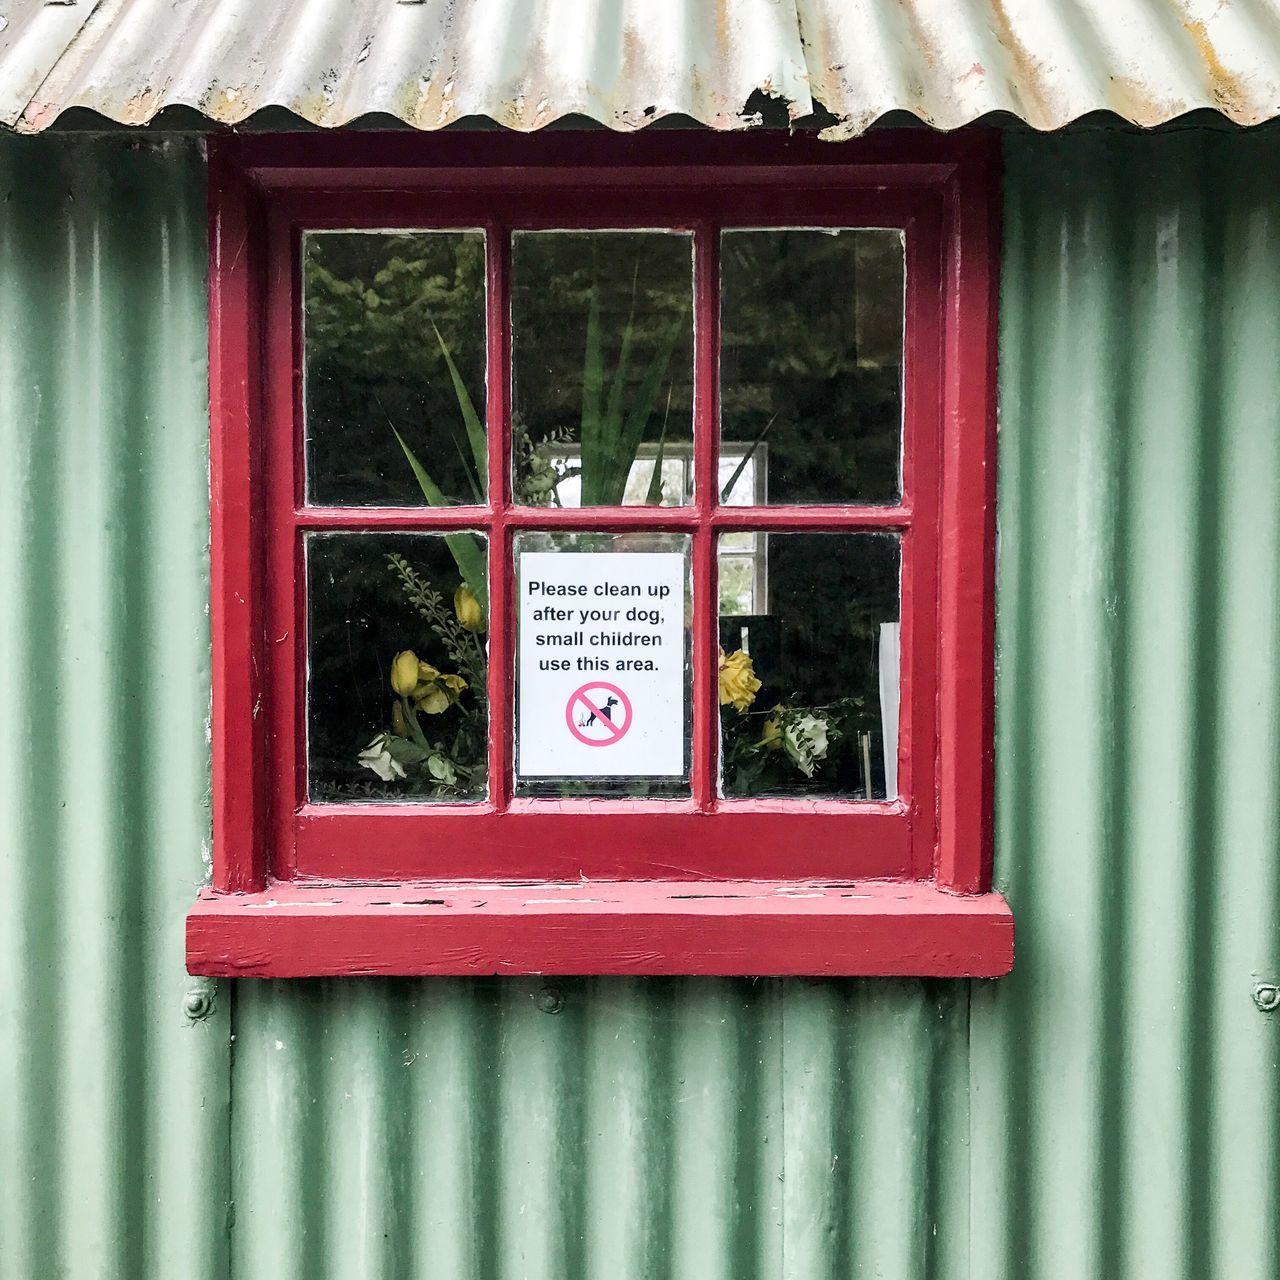 Dog fouling sign in window Sign Notice Dog Fouling Window Green Red Corrugated Iron Information Glass Quarters 4 No People Architecture Building Architectural Close Up Detail